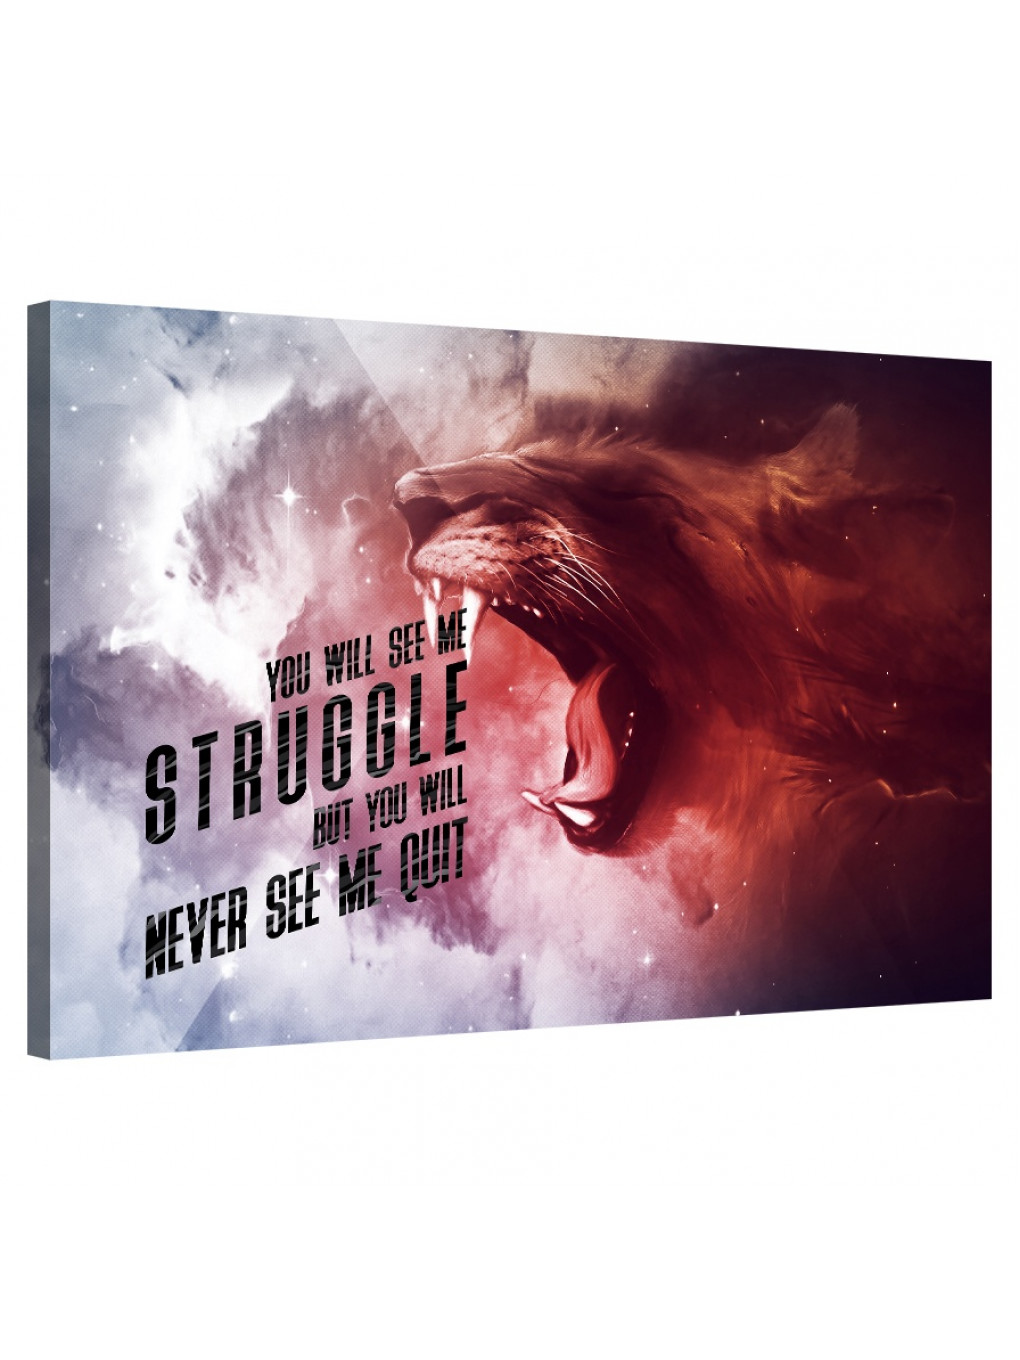 You Will See Me Struggle_STR516_8